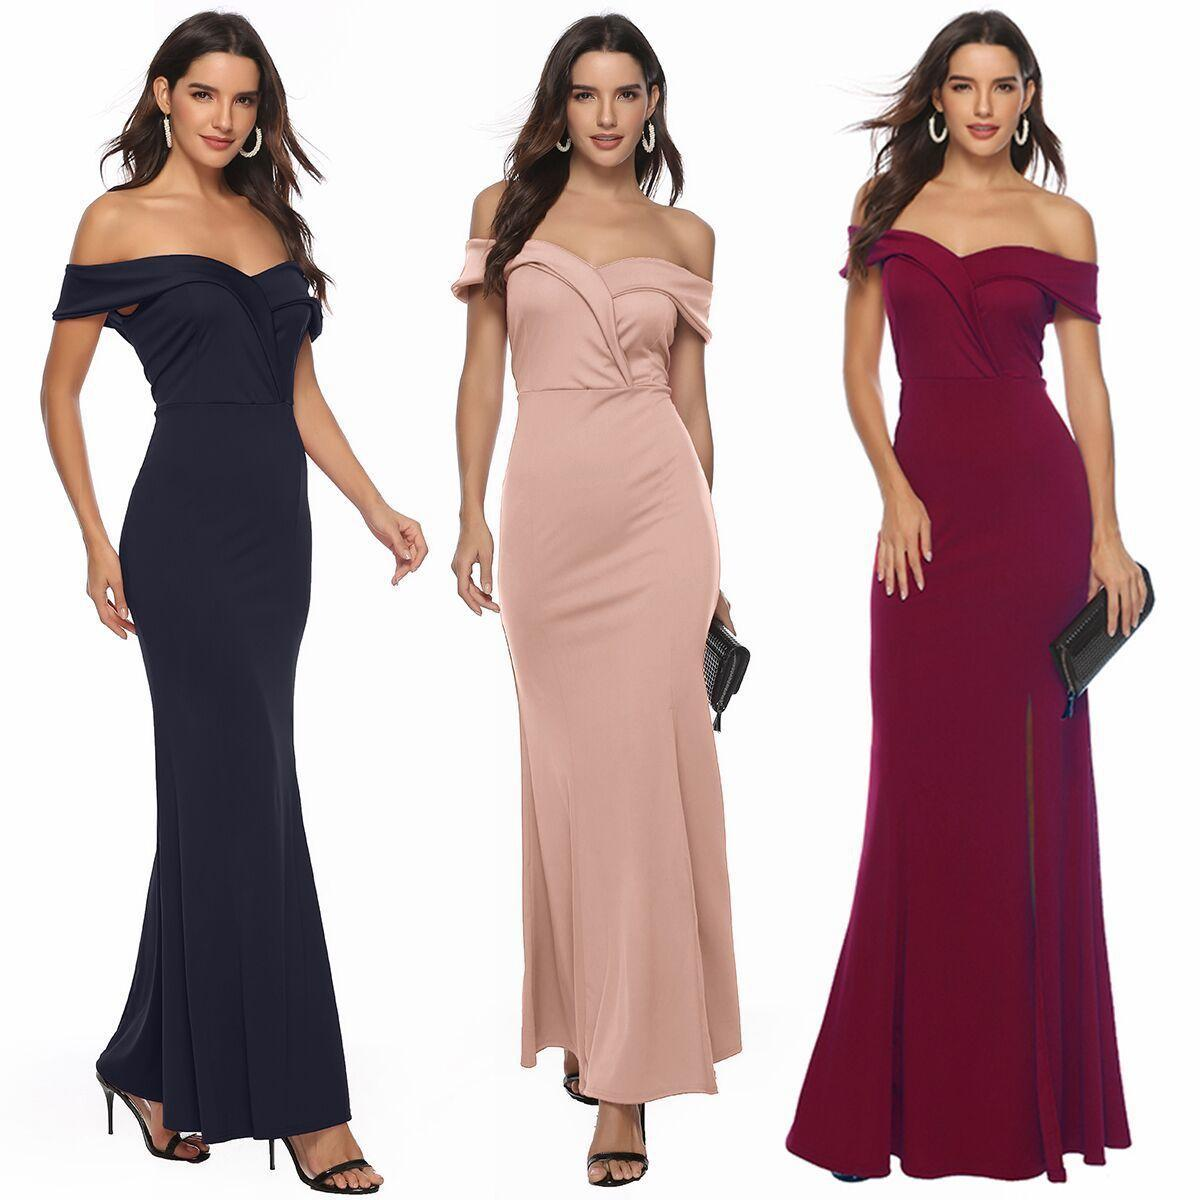 Fashionable and sexy evening gowns in nightclubs in Europe and the United States are on sale in 2019 Maxi Dresses